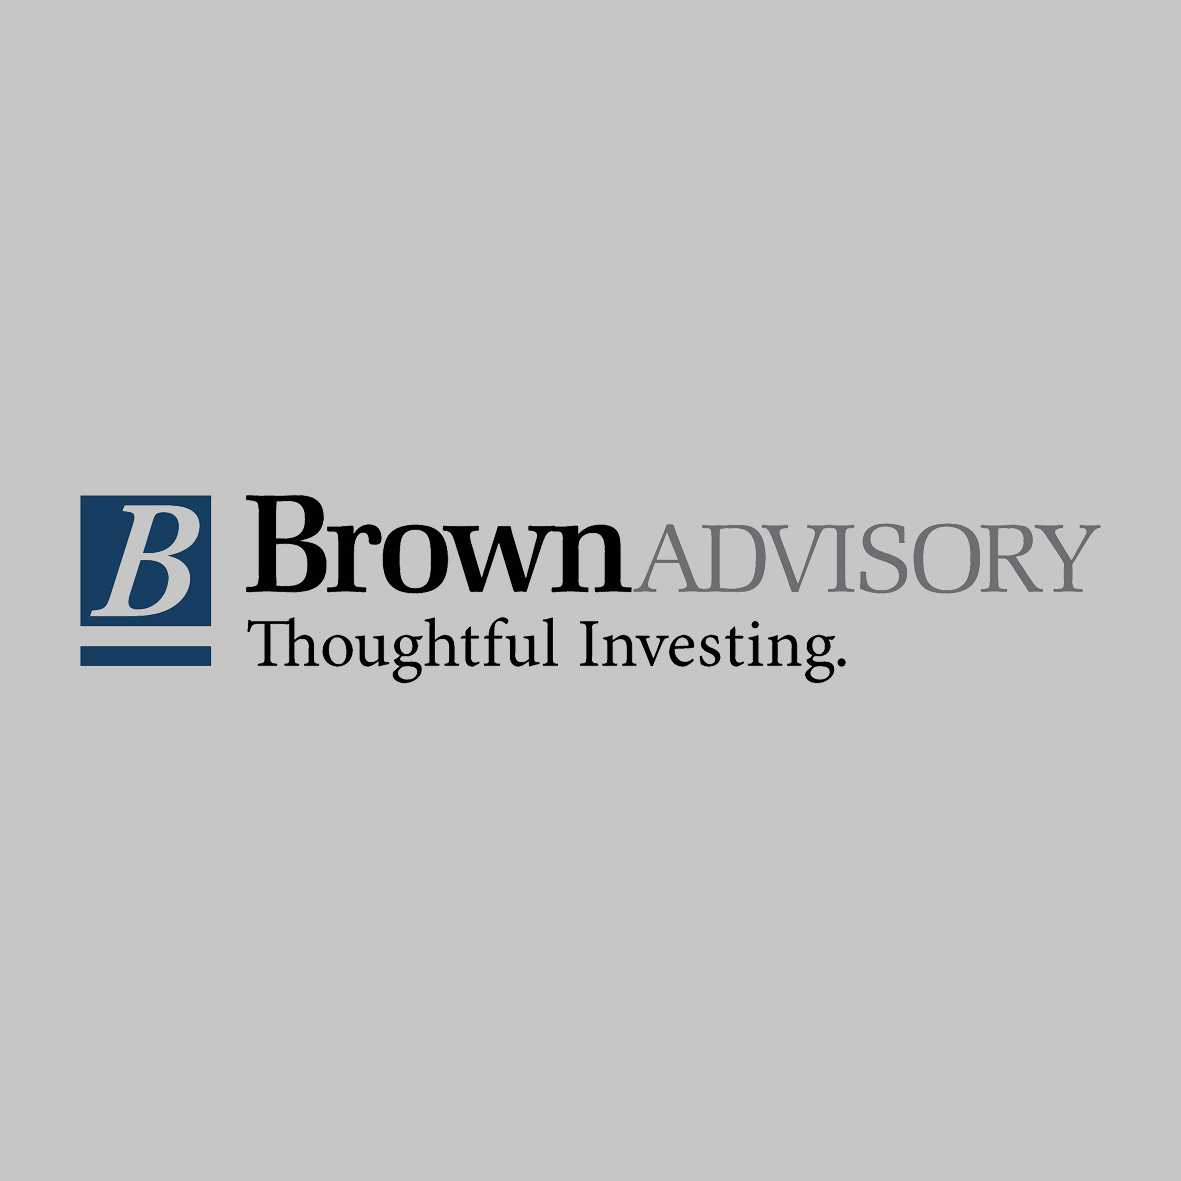 Brown Advisory   Brown Advisory is a global, employee-owned, investment management firm offering a wide range of solutions to individuals, families, charities and institutions. The firm is committed to delivering a combination of first-class performance, strategic advice and the highest level of service. As of 31st January, 2019, the firm had approximately $69.7 billion in client assets, with clients in 37 countries worldwide.    https://www.brownadvisory.com/